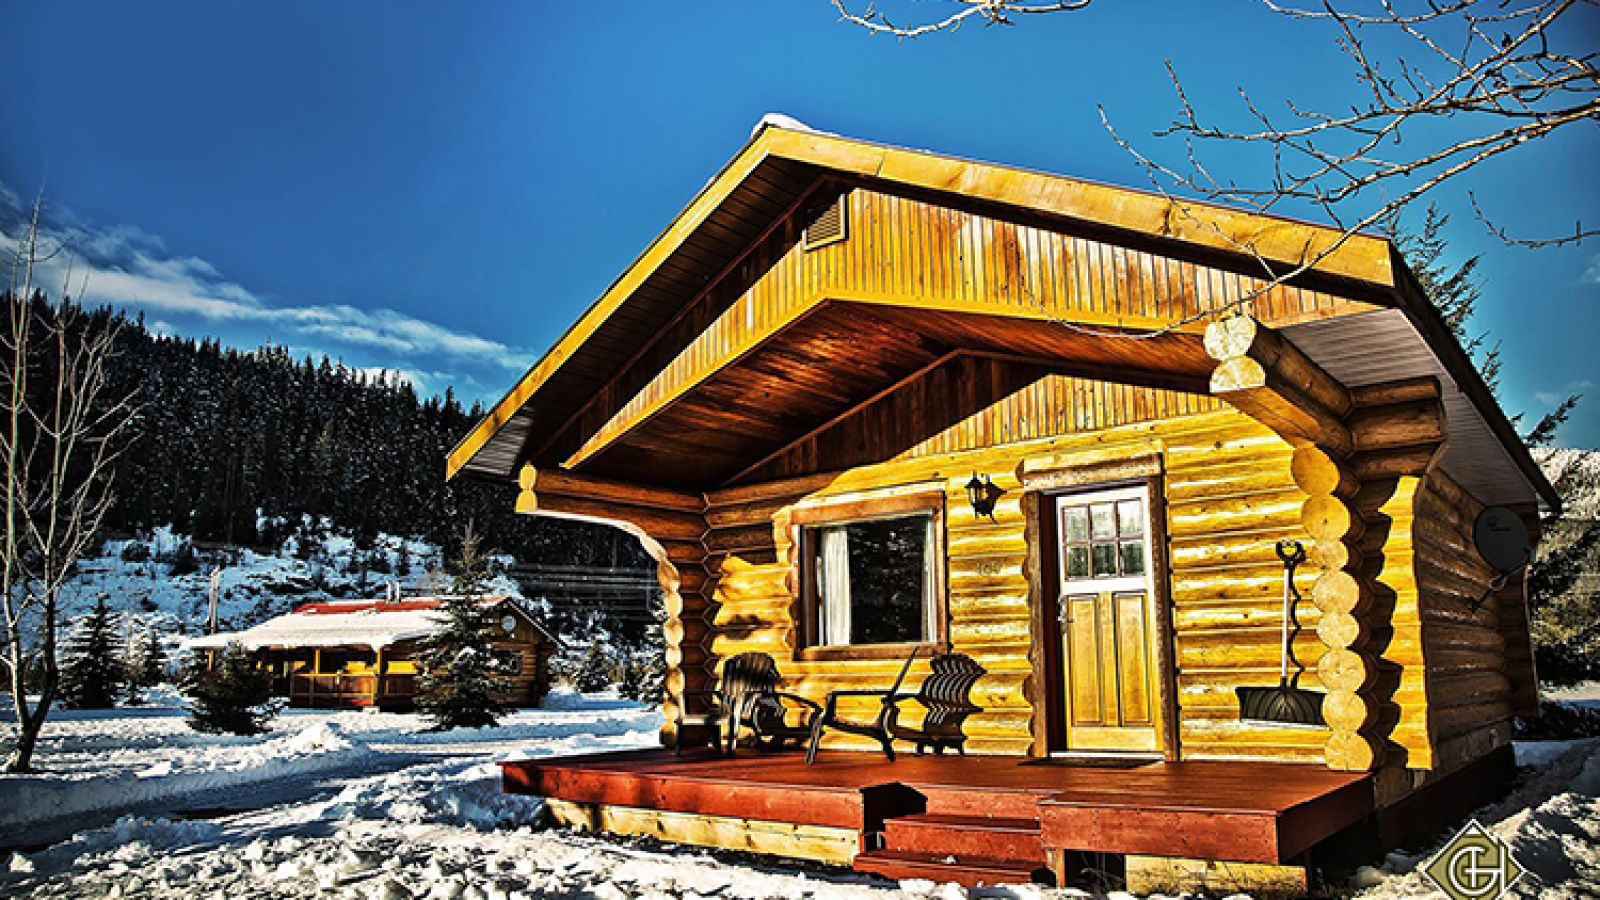 Cozy log cabin accommodation.